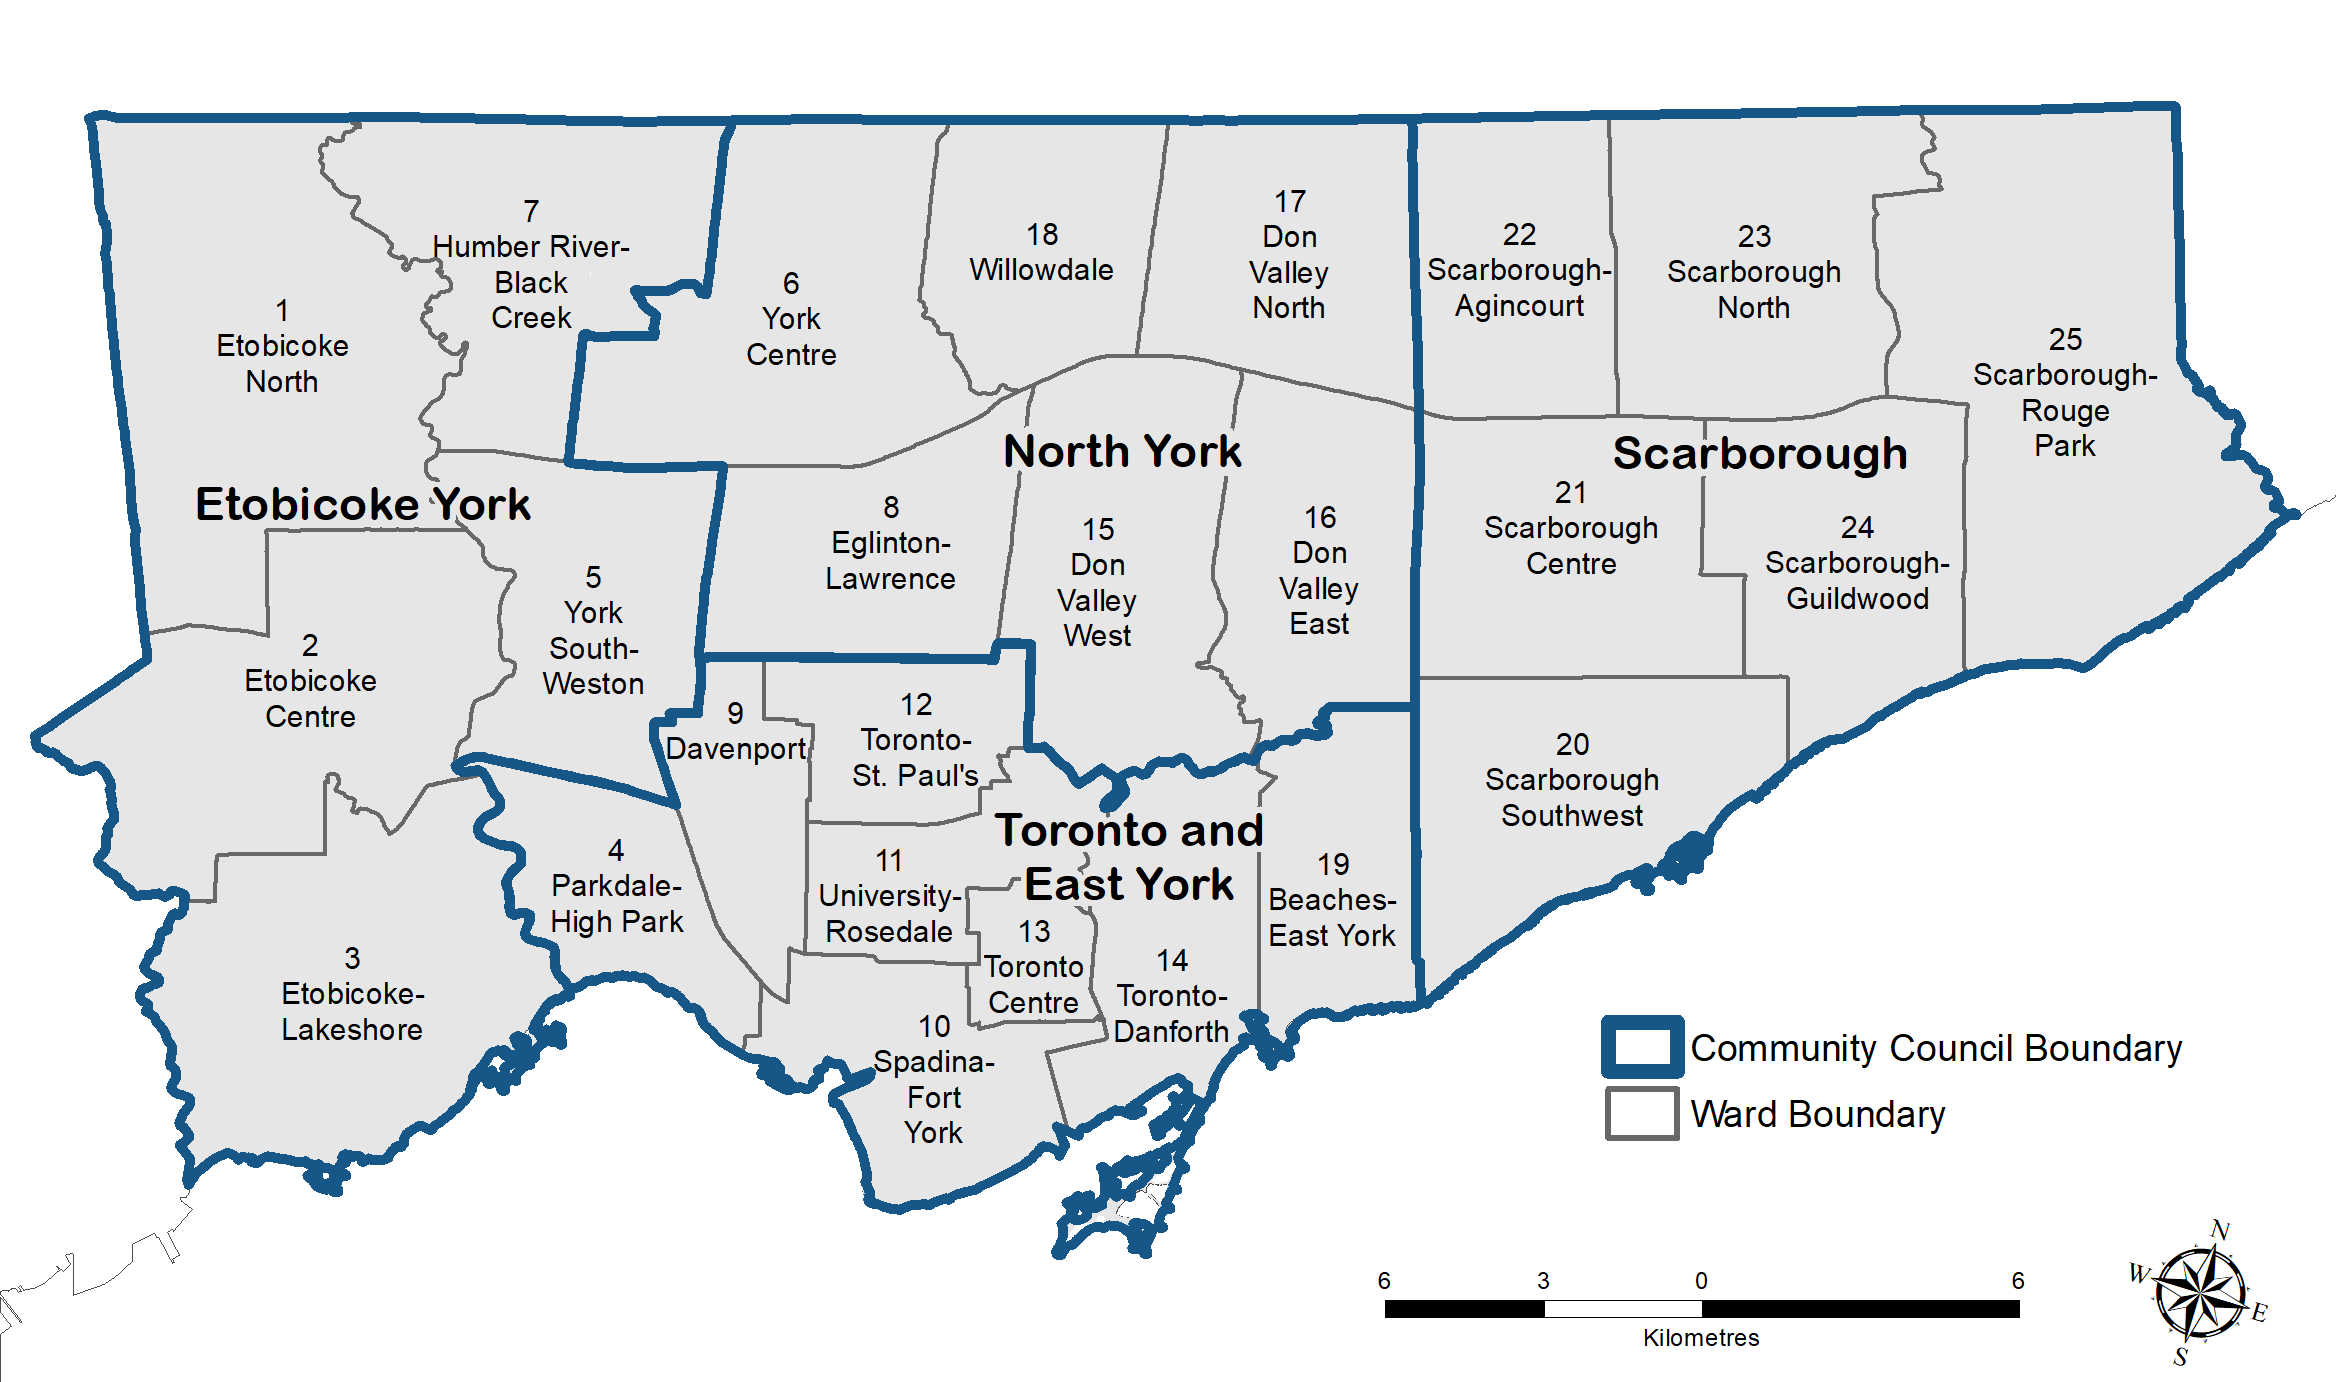 A map showing Toronto's Community Councils